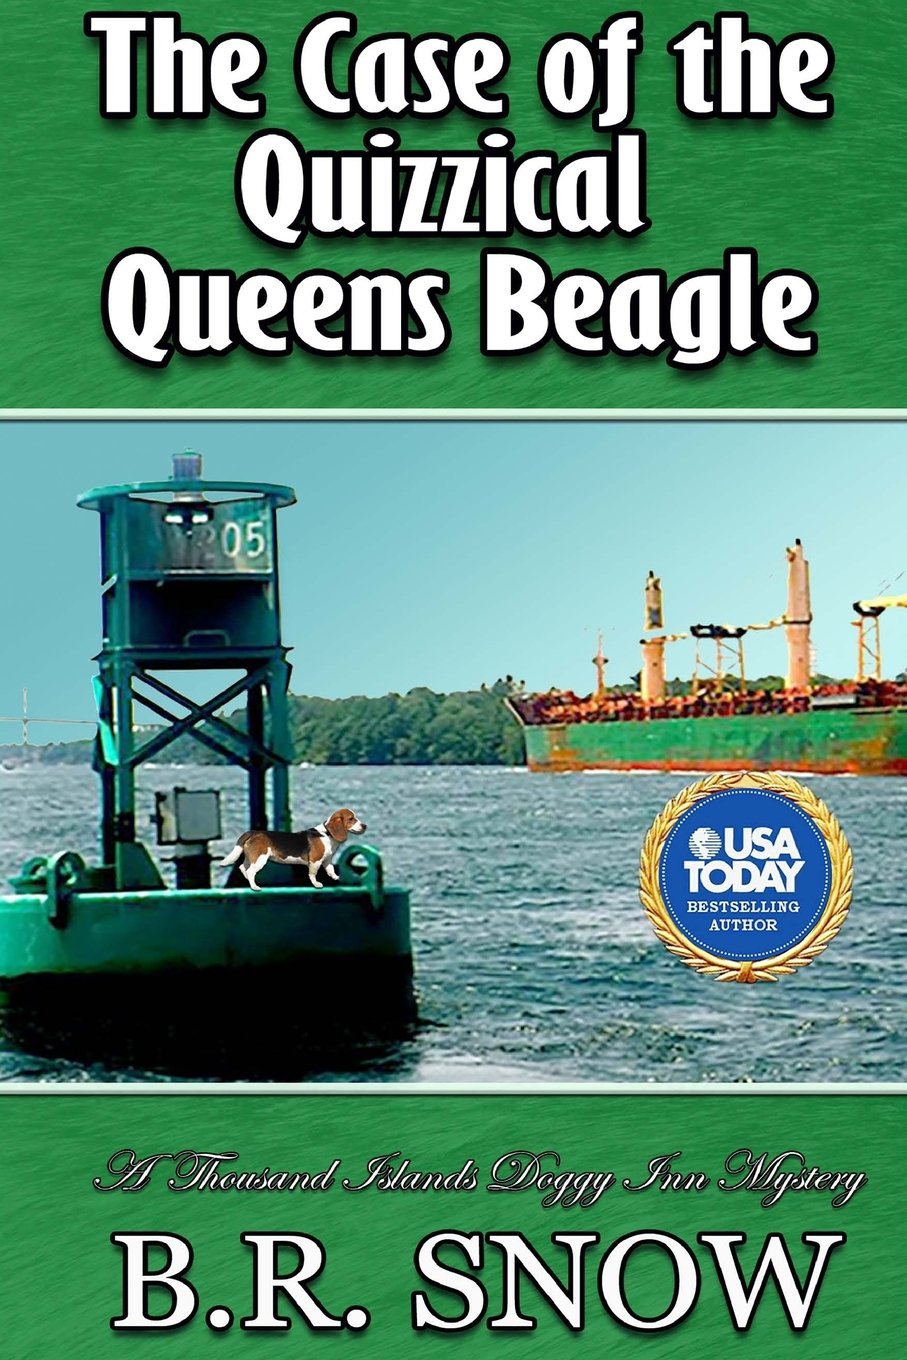 Download The Case of the Quizzical Queens Beagle (The Thousand Islands Doggy Inn Mysteries) (Volume 17) pdf epub